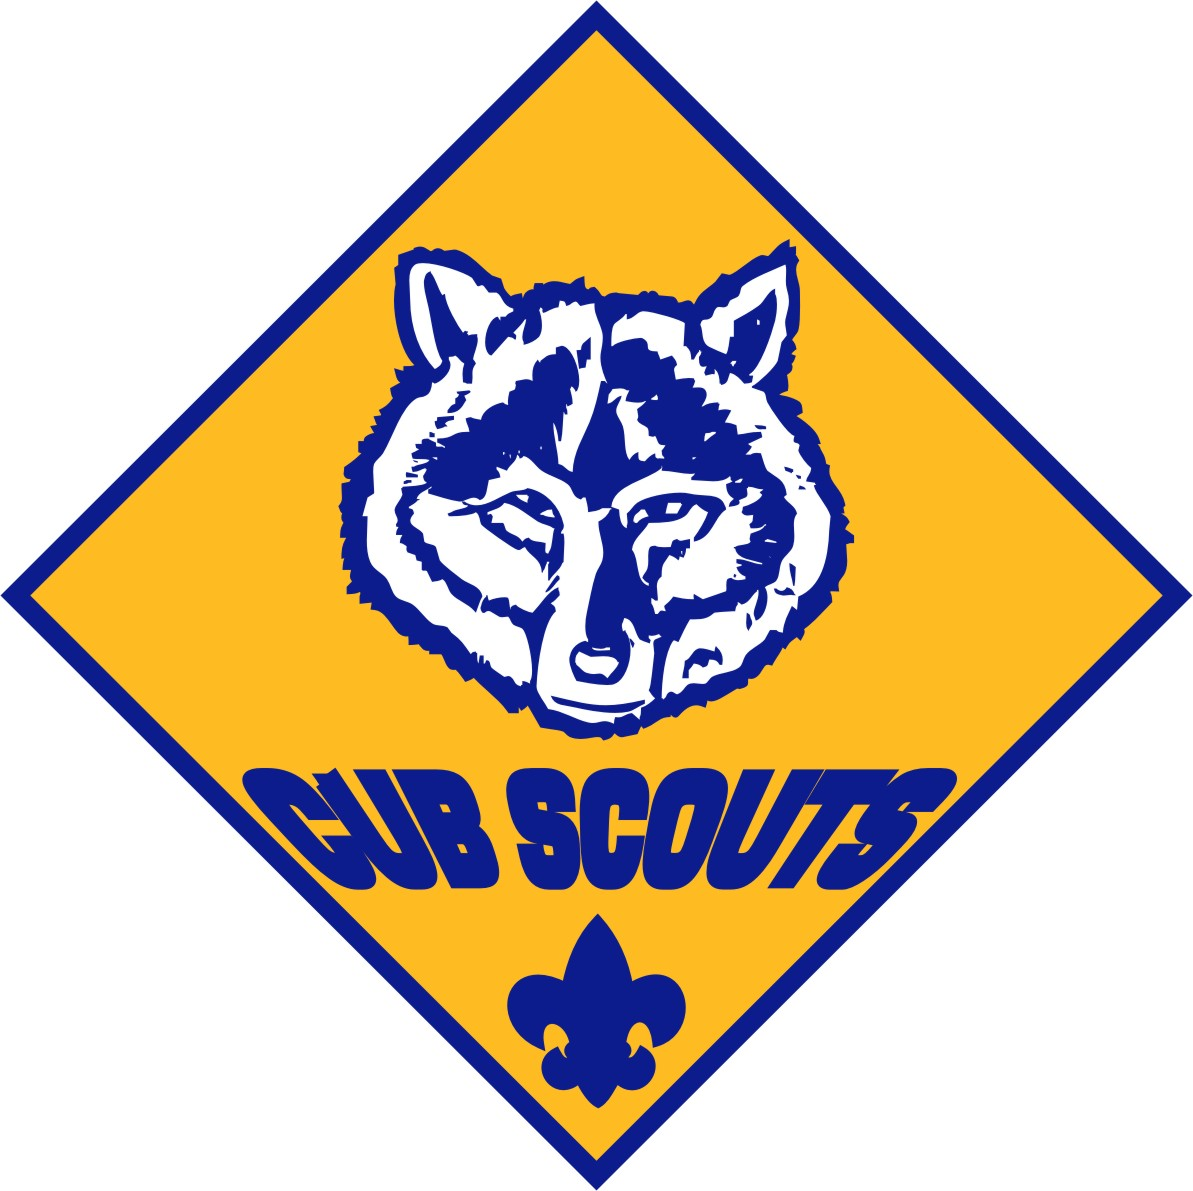 Cub scout picture free download best cub scout picture on 1193x1191 cub scouts pack 103 enjoy randolph buycottarizona